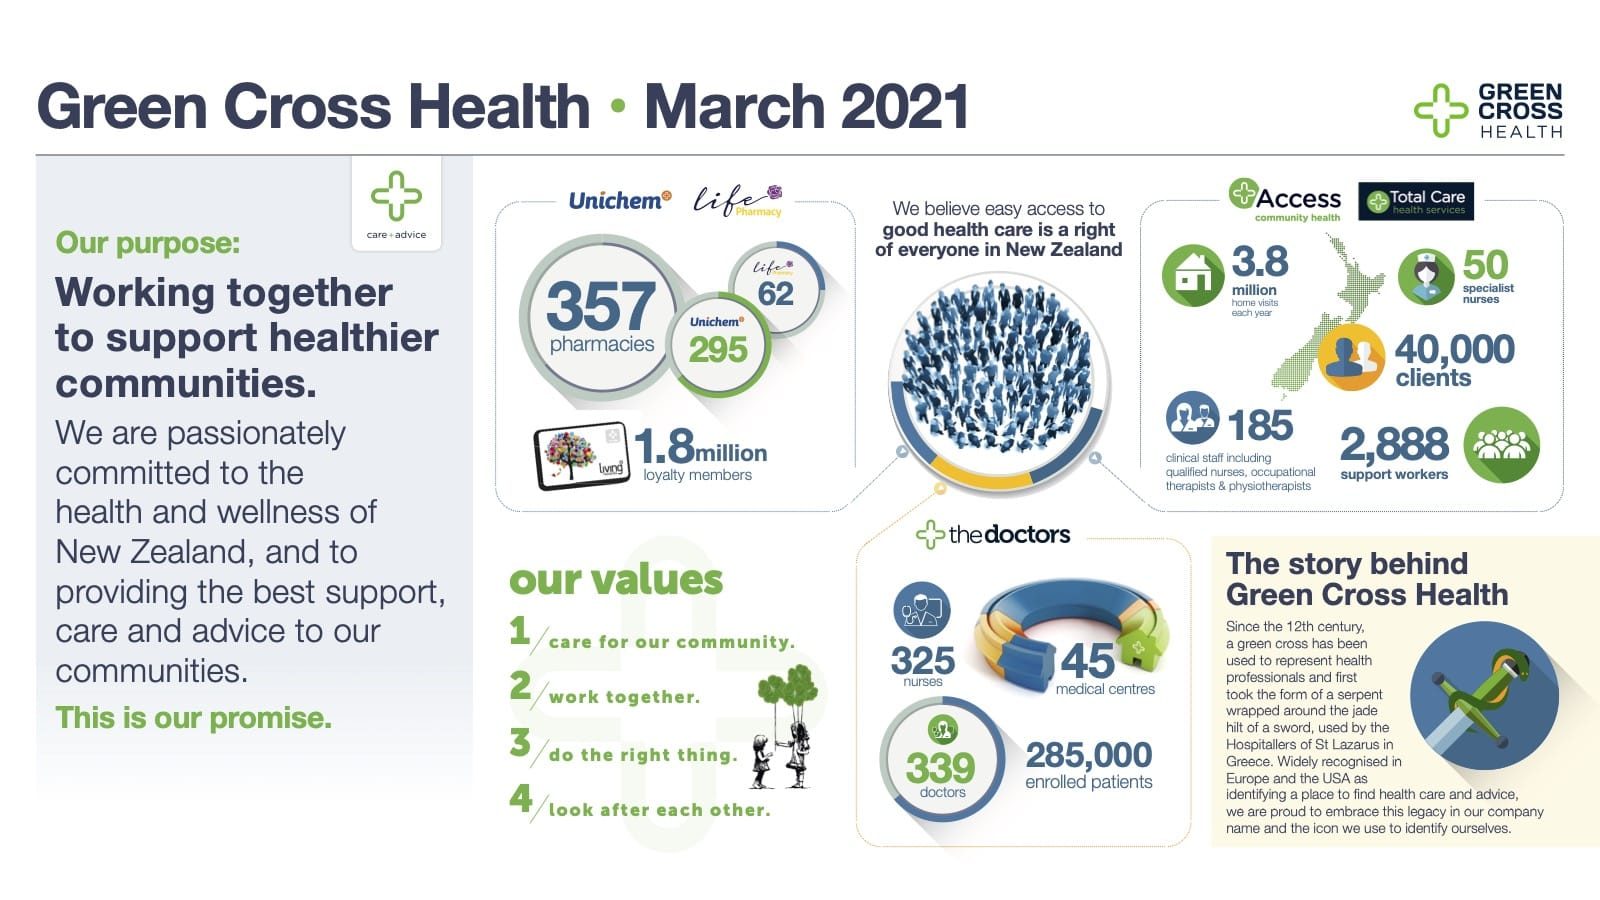 Green Cross Health | March 2021 | Our purpose: Working together to support healthier communities. | We are passionately committed to the health and wellness of New Zealand, and to providing the best support, care and advice ot our communities. | This is our promise. | Unichem | life Pharmacy | 358 pharmacies. 1.8 million loyalty members. | We believe easy access to good health care is a right of everyone in New Zealand. | Access community health | Total Care health services | 3.8 million home visits each year | 50 specilist nurses | 40,000 clients | 185 clinical staff including qualified nurses, occupational therapists & physiotherapists | 2,888 support workers | our values. 1/ care for our commnity. 2/ work together. 3/ do the right thing. 4/ look after each other. | the doctors | 325 nurses | 45 medical centres | 339 doctors | 285,000 enrolled patience. | The story behind Green Cross Health | Since the 12th century, a green cross has been used to represent health professionals and first took the form of a sepent wrapped around the jade hilt of a sword, used by the Hospitallers of St Lazarus in Greece. Widely recognised in Europe and the ISA as identifying a place to find health care and advice, we are proud to embrace this legacy in our company name and the icon we use to identify ourselves.